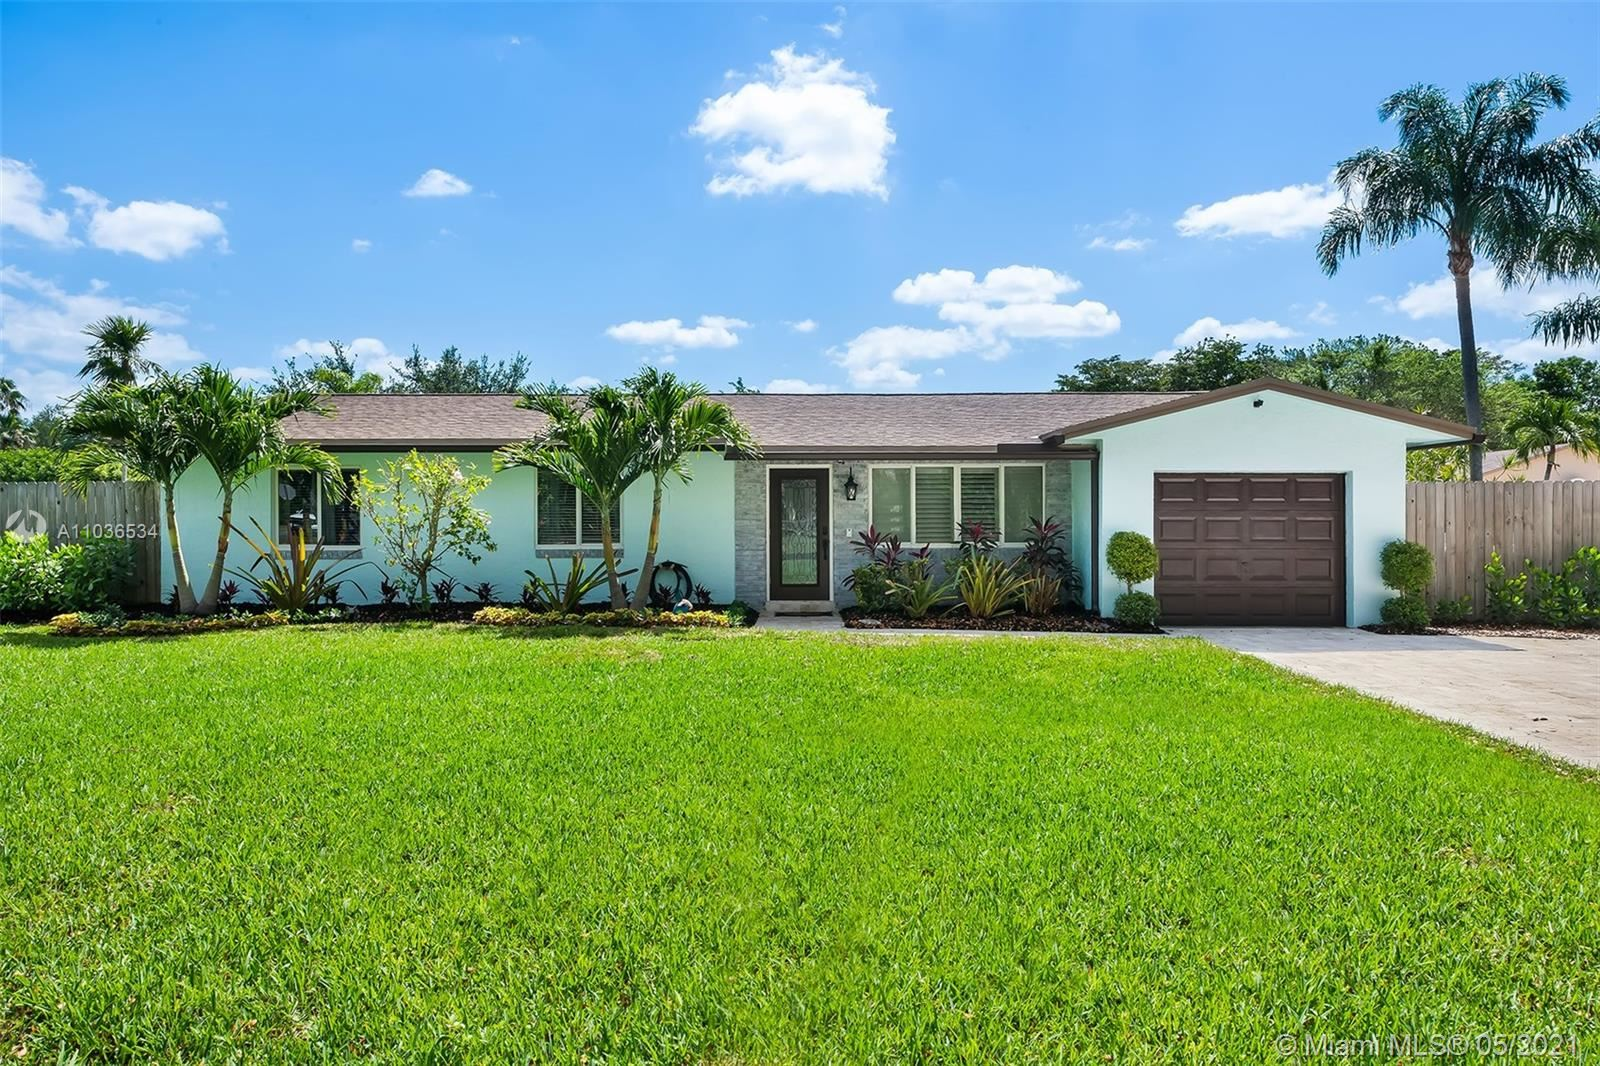 5100 SW 188th Ave, SouthWest Ranches, FL 33332 - #: A11036534